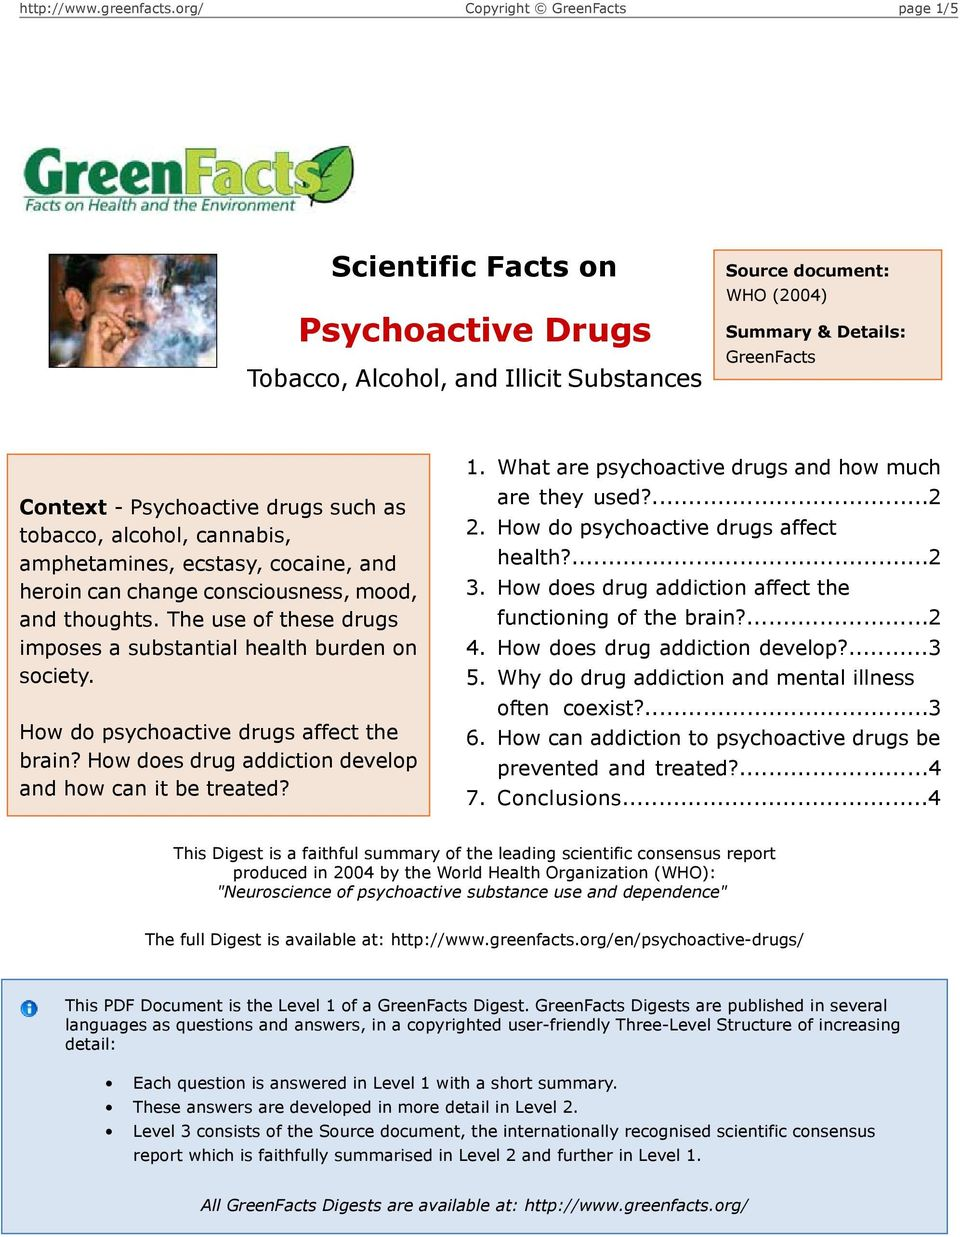 How do psychoactive drugs affect the brain? How does drug addiction develop and how can it be treated? 1. 2. 3. 4. 5. 6. 7. What are psychoactive drugs and how much are they used?